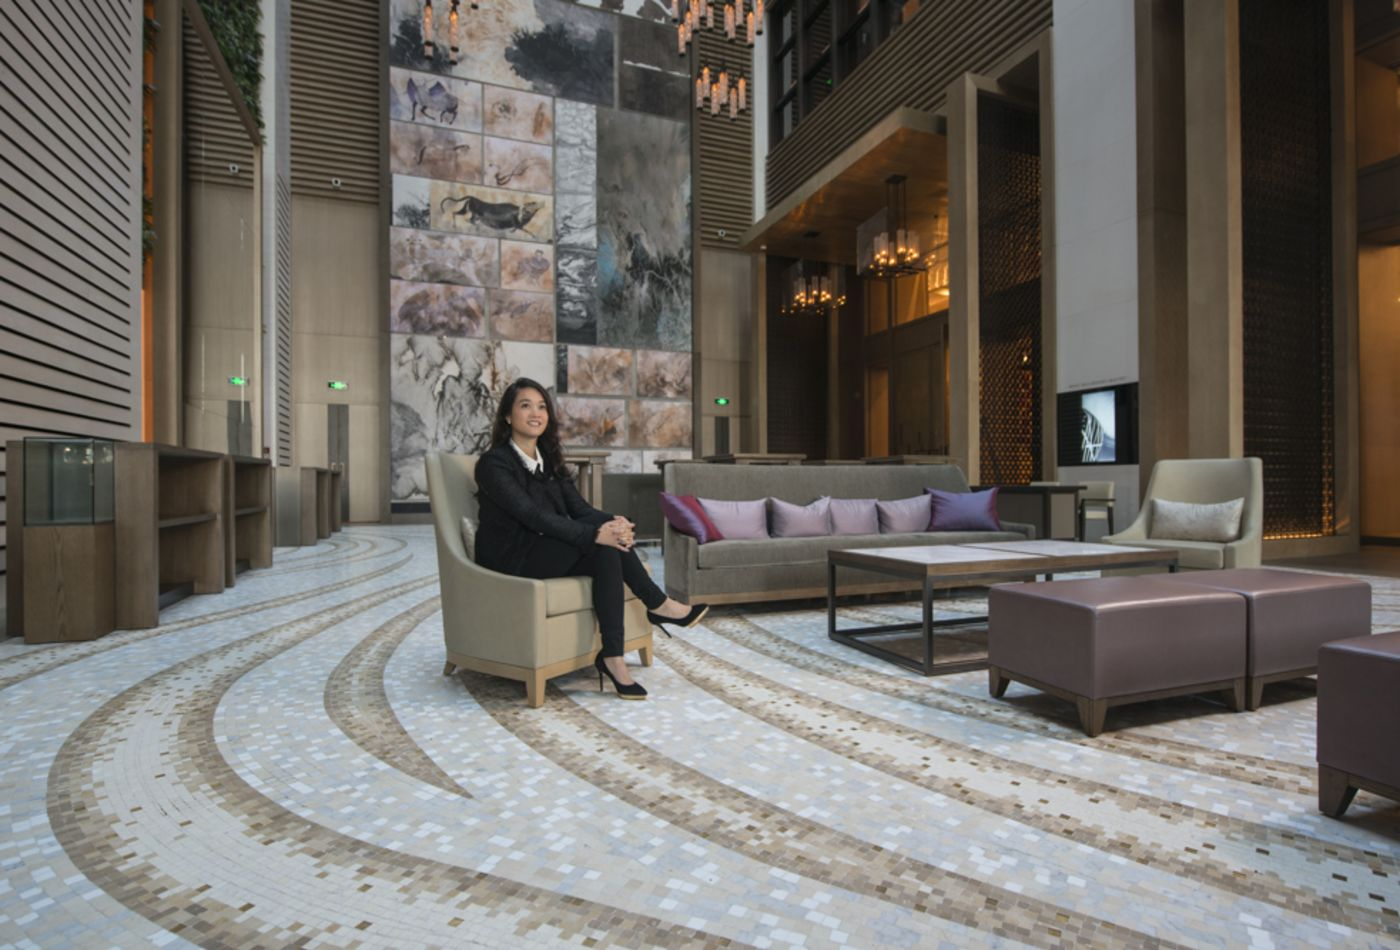 This Hong Kong CEO from a billionaire family is reinventing hotels for millennials